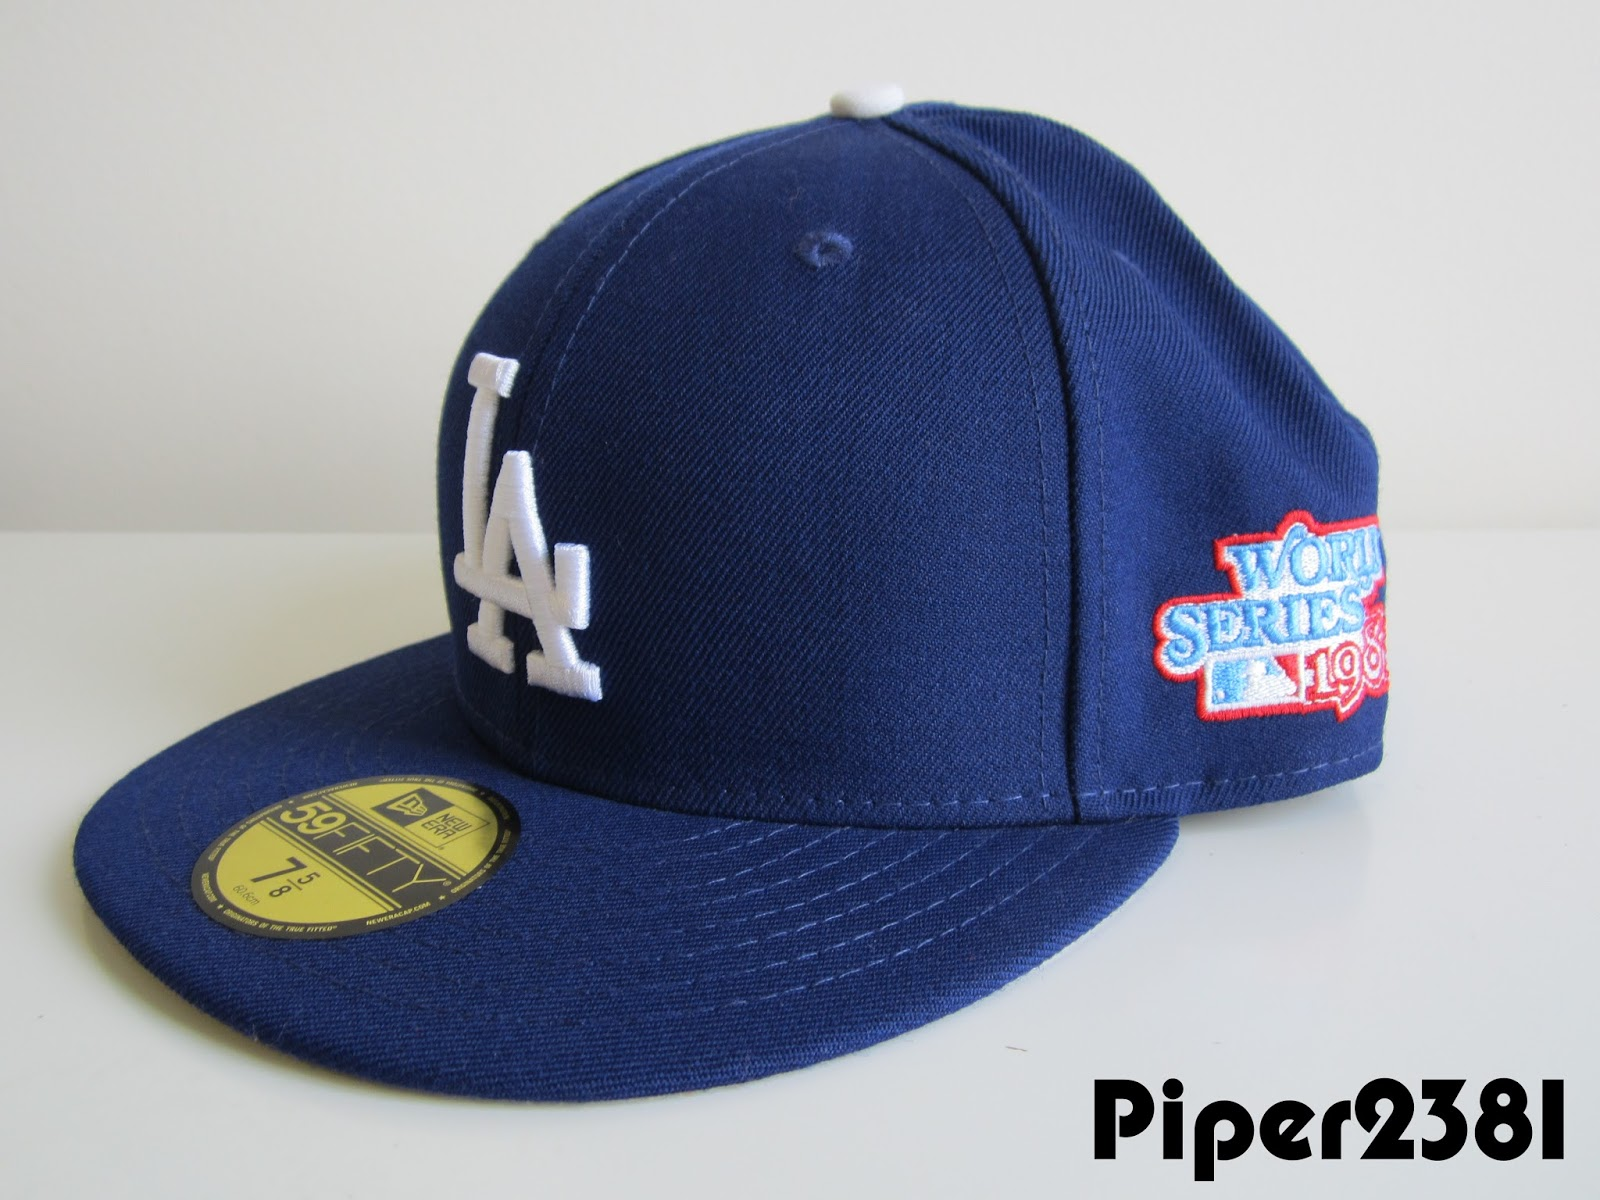 f552b59f139 This hat is part of New Era s World Series patch collection